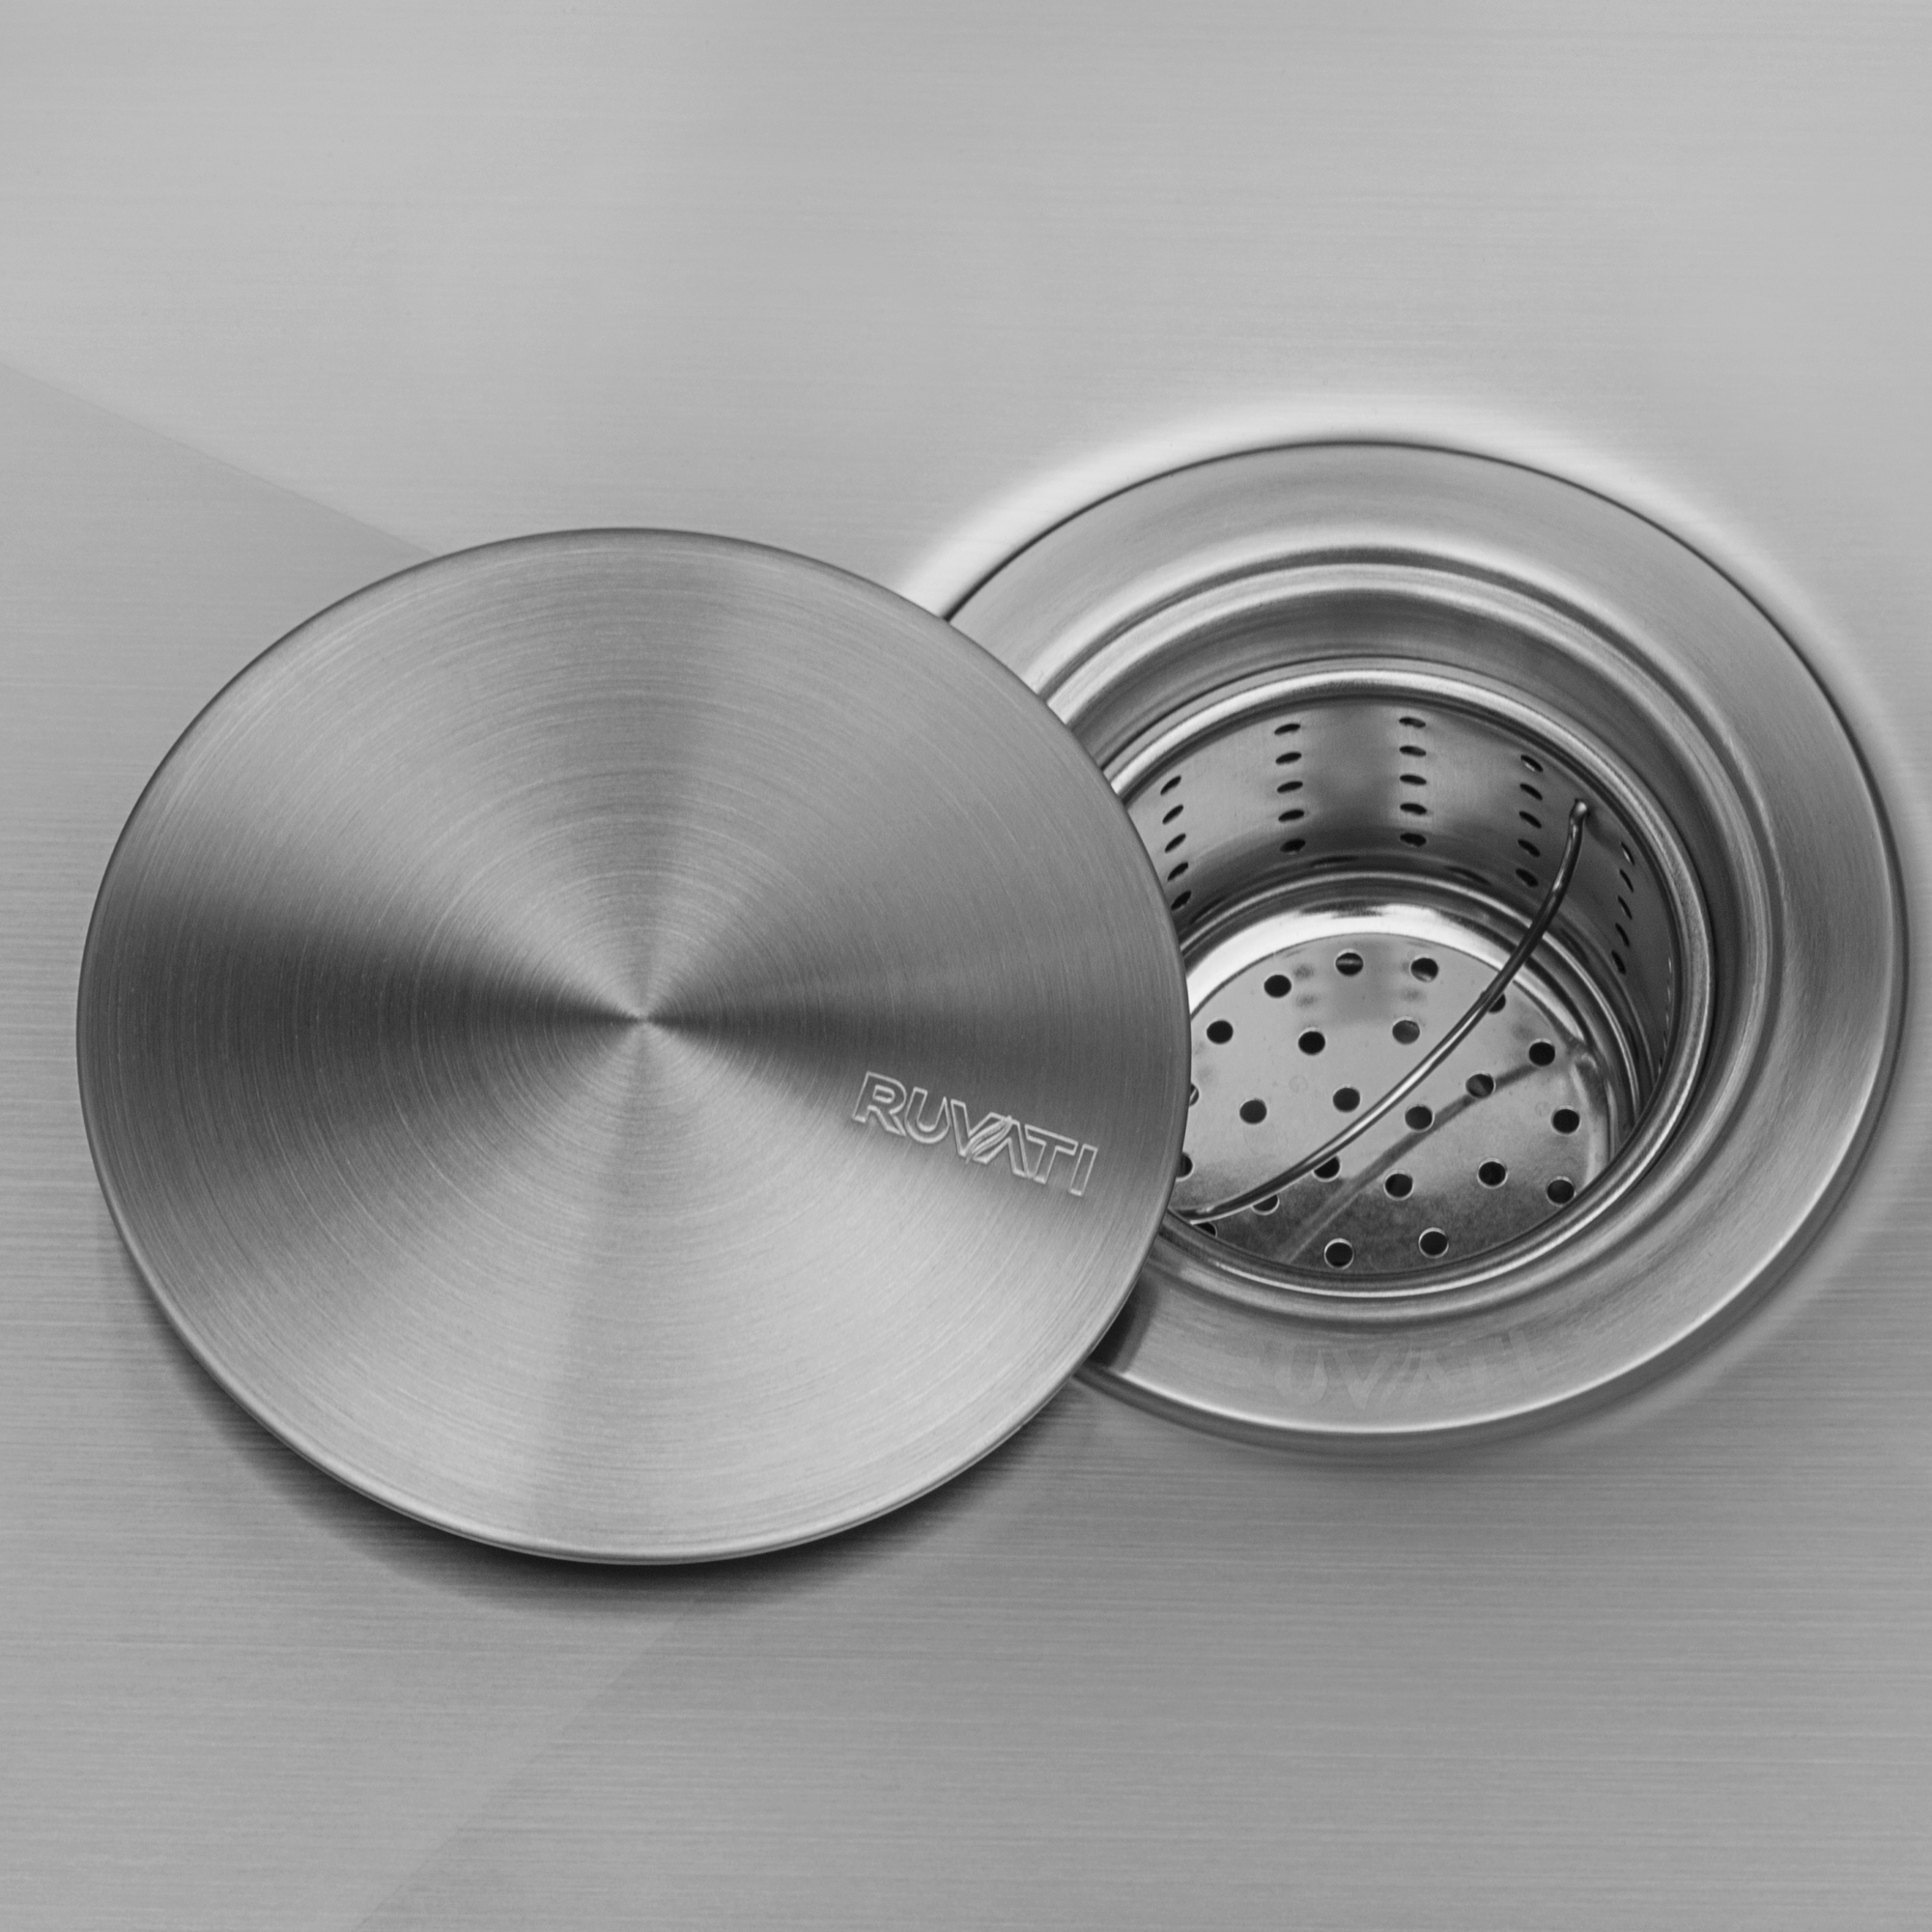 ruvati drain cover for kitchen sink and